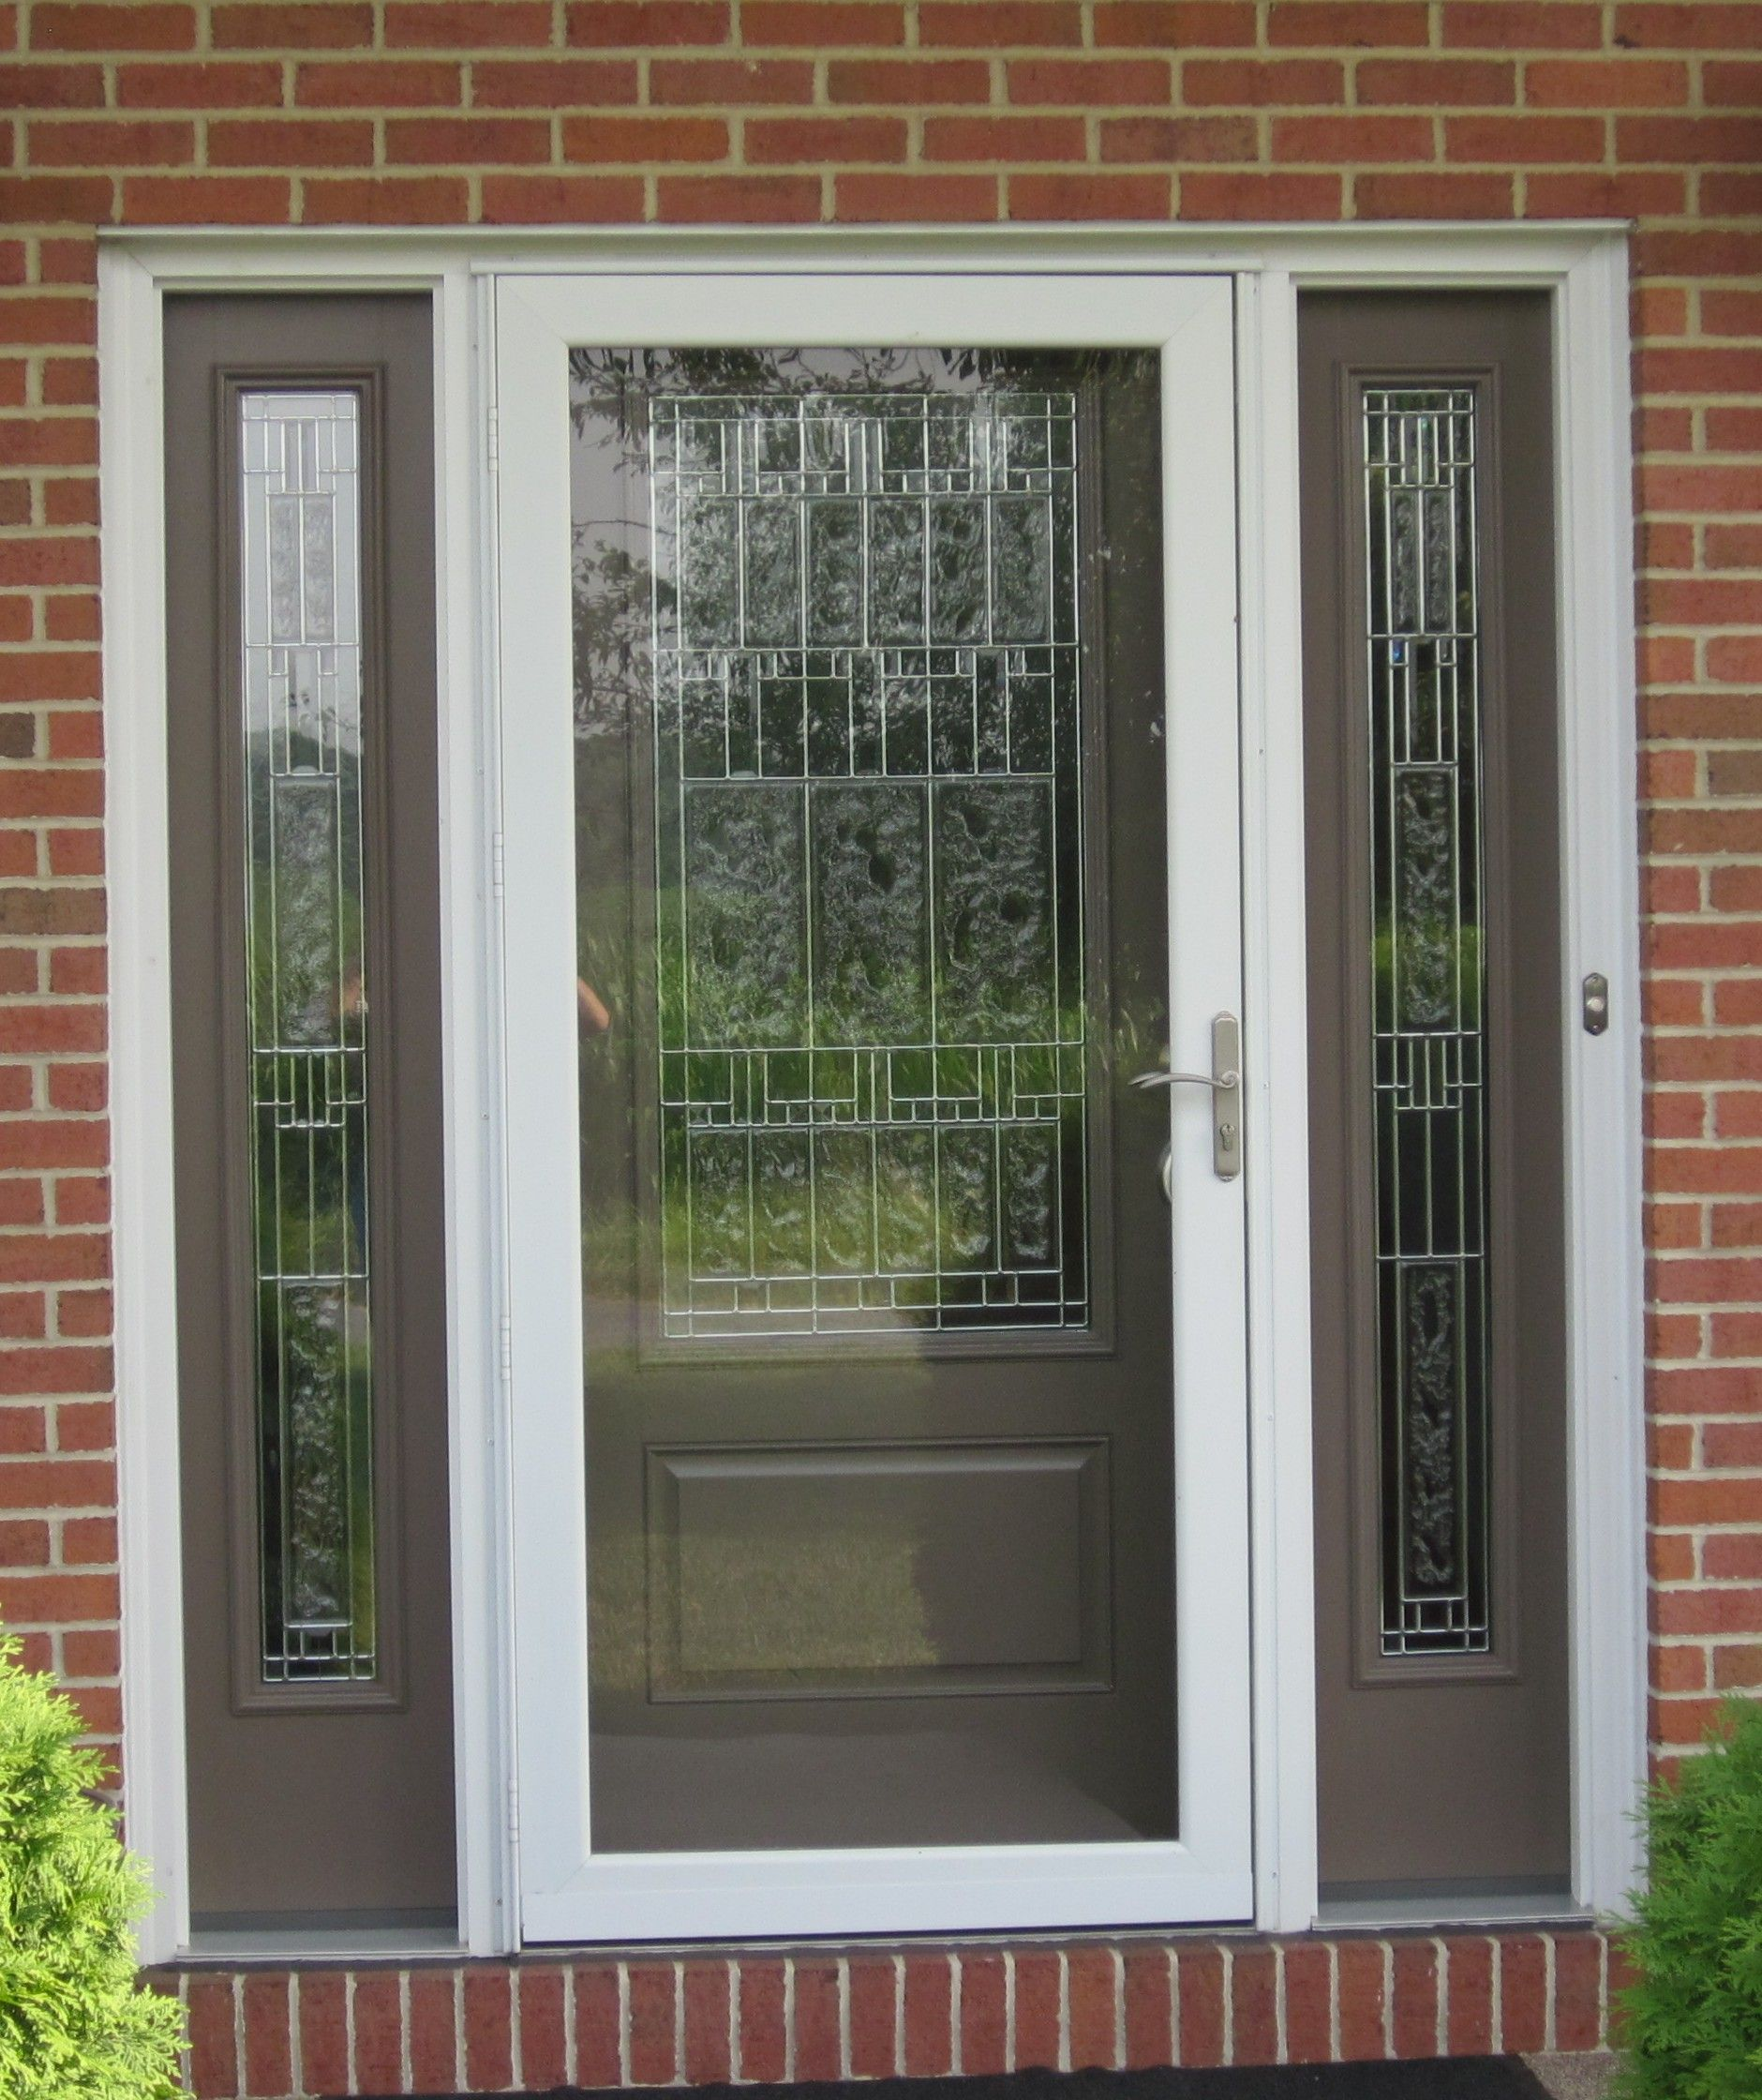 Merveilleux Therma Tru Doors For Your Terrific House Design: Lowes Fiberglass Entry  Doors | Therma Tru Patio Doors Reviews | Therma Tru Doors